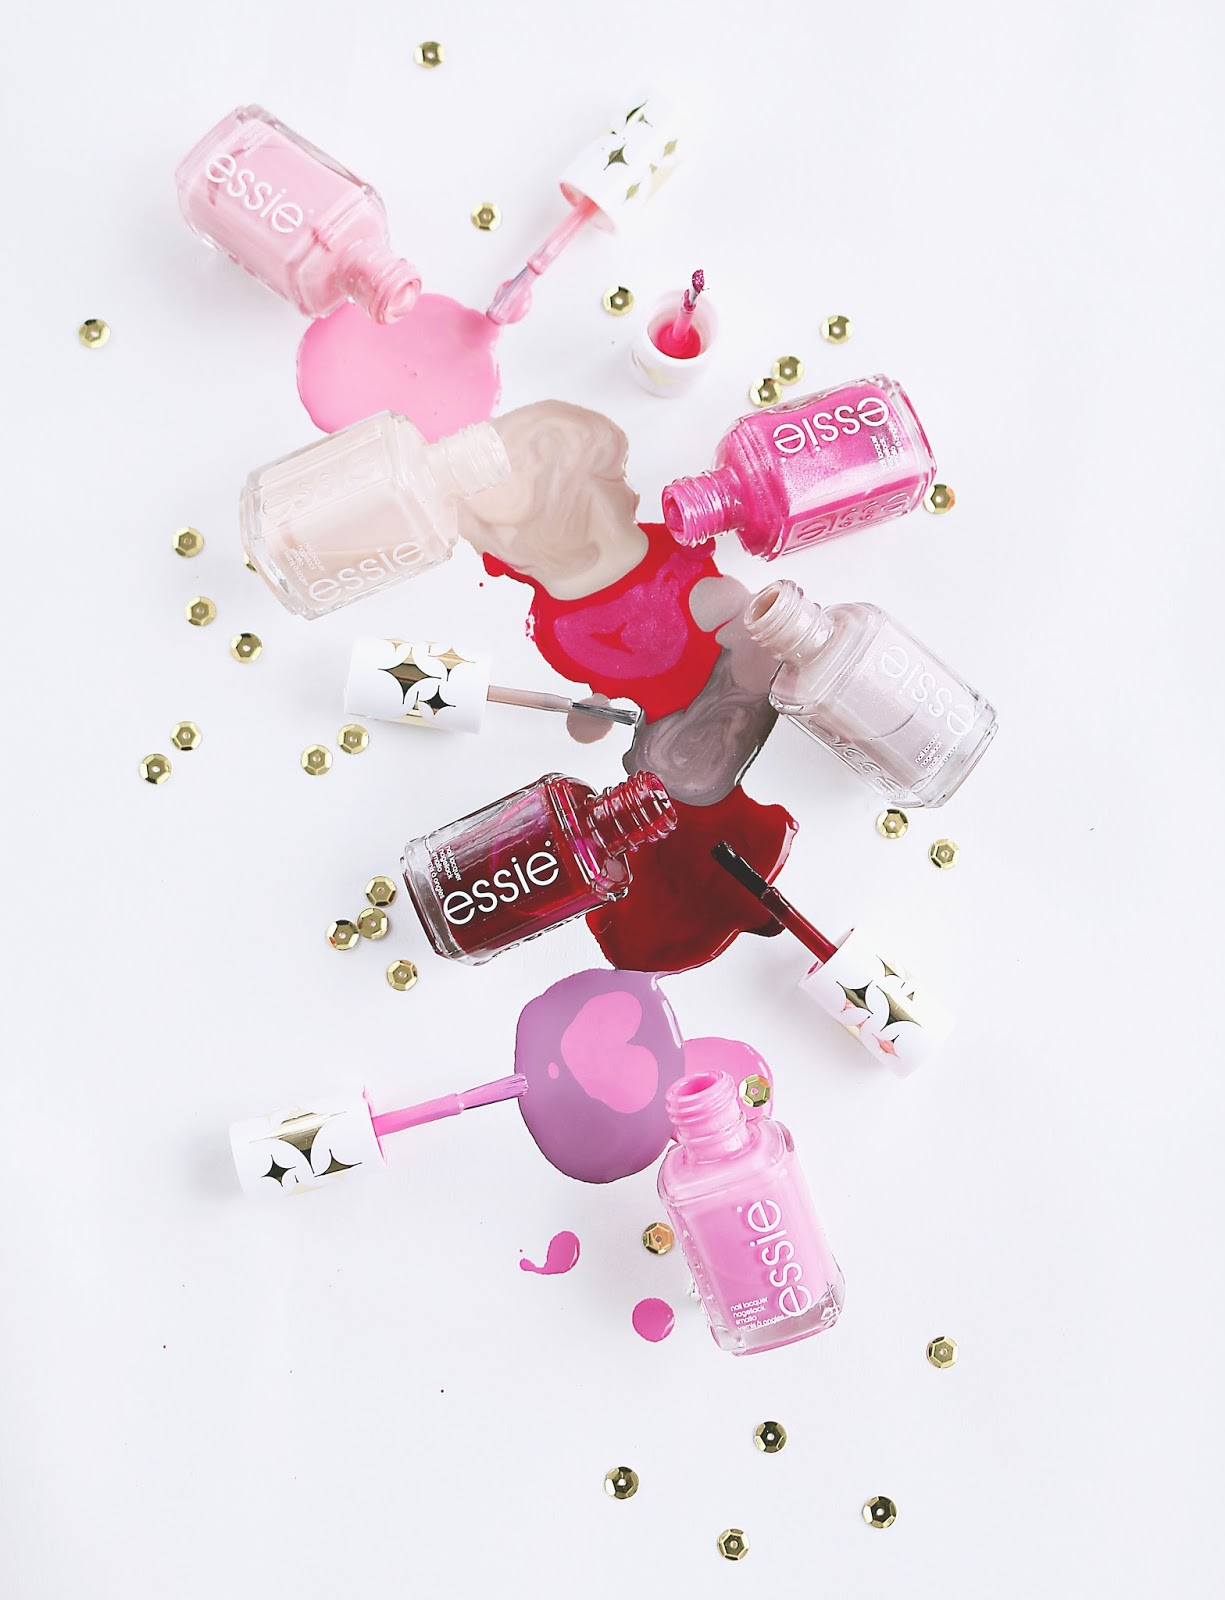 Beauty, Nails, Drugstore, essie retro revival, essie retro revival collection 2017, essie retro revival collection 2017 swatches, essie, essie nail polish, swatches, new essie nail colours, essie 2017, dizzybrunette3